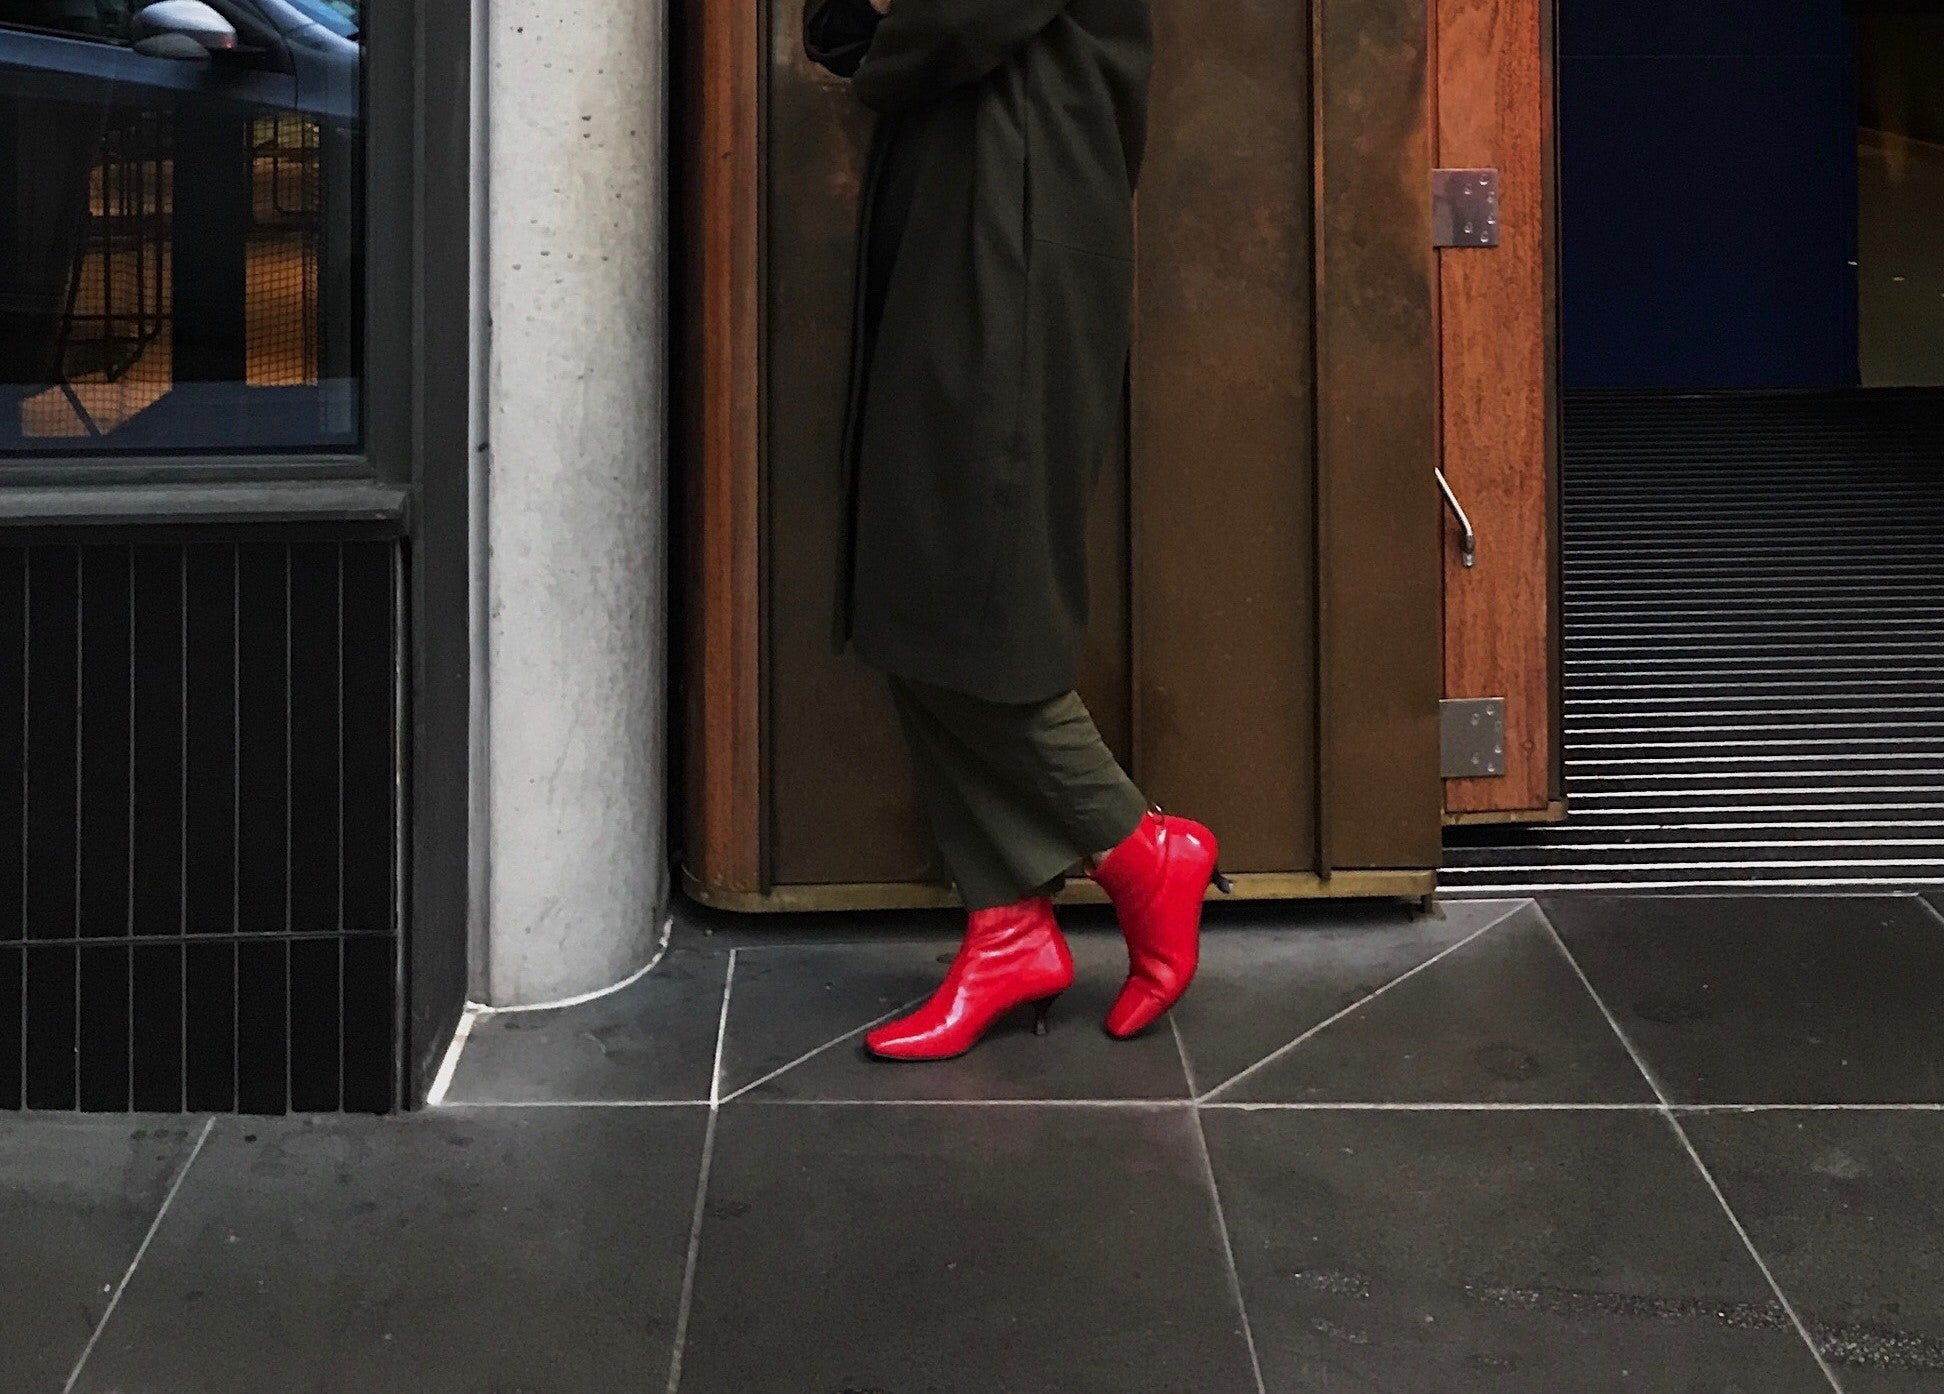 Amy Farrell, The Fashion Futurist, wears EOD by ASHLEY LIM Femme boots